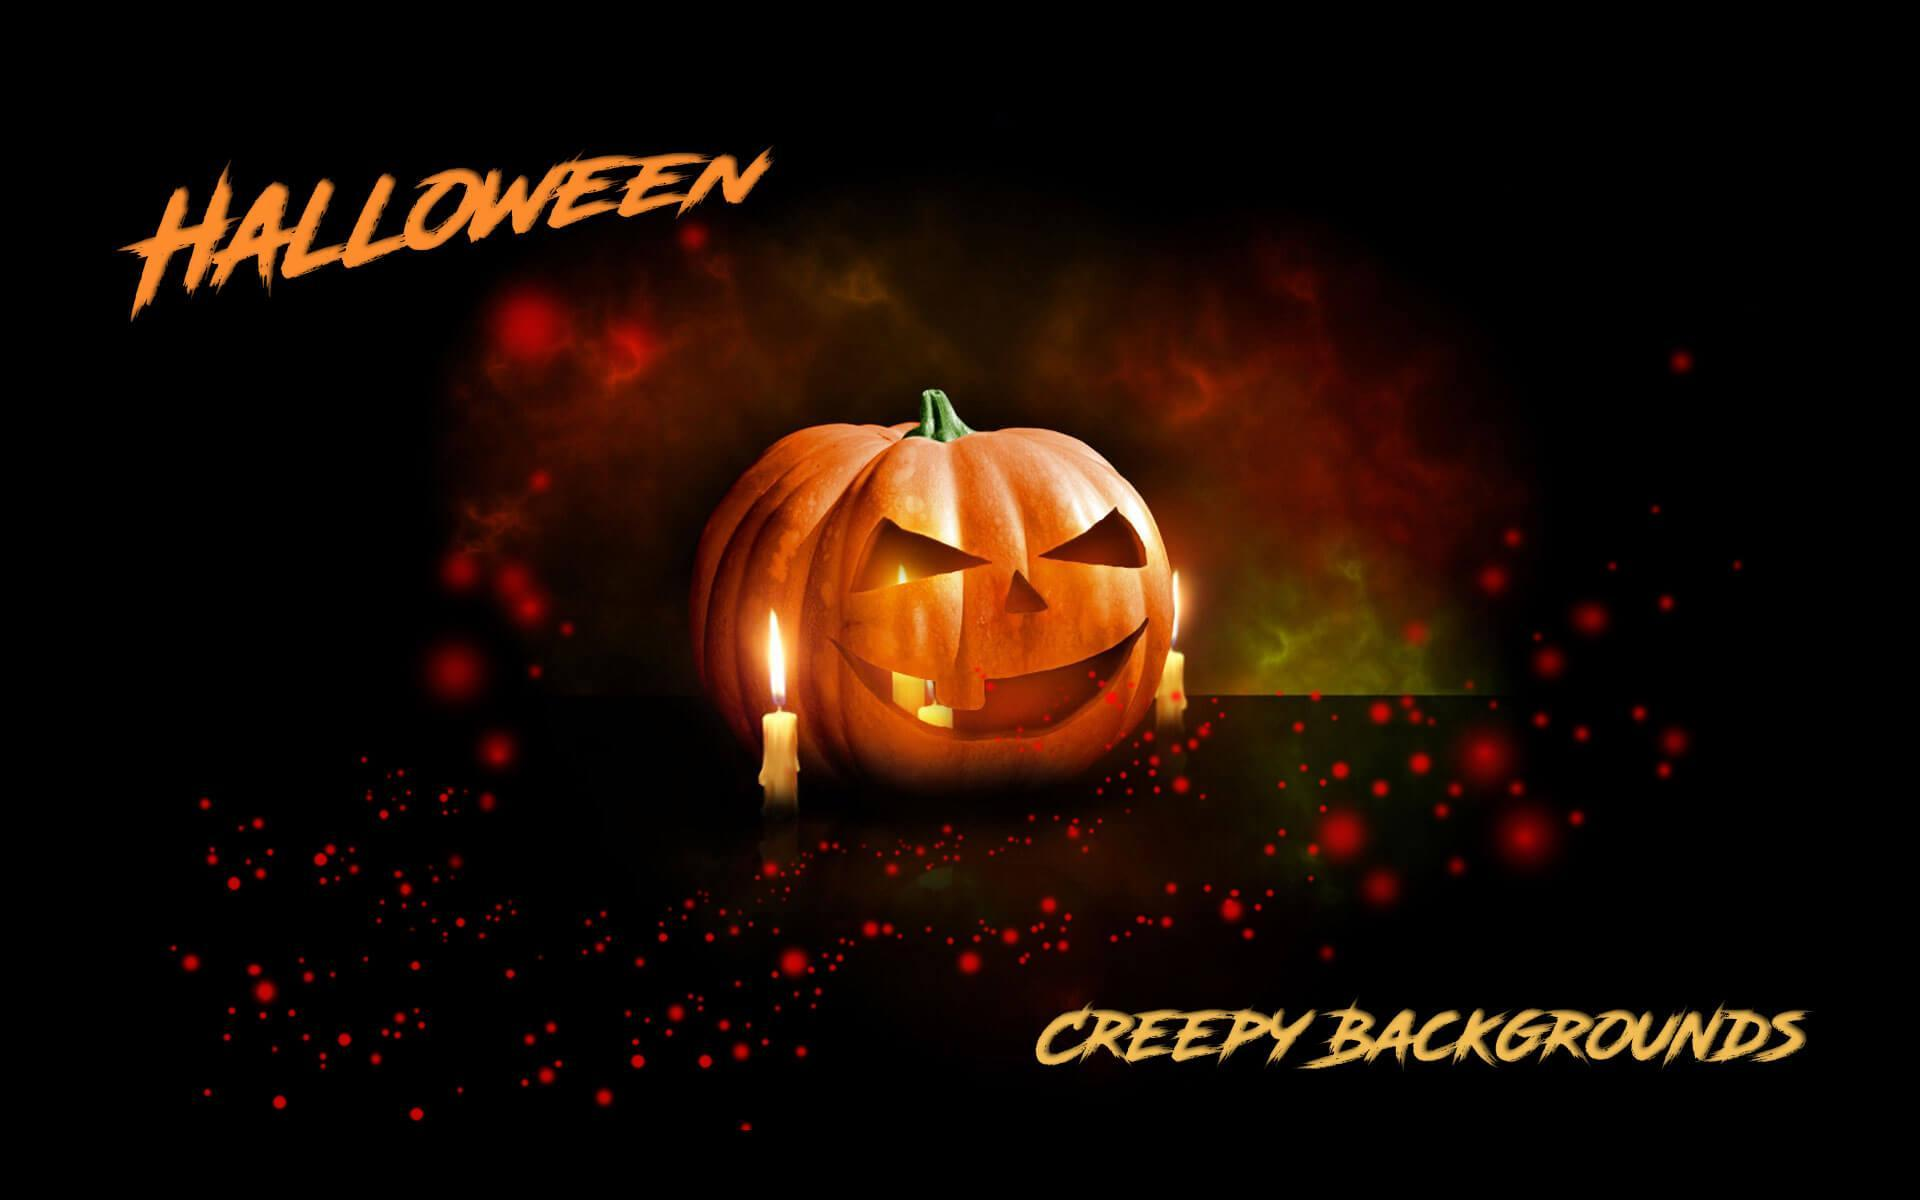 Live Halloween Wallpaper Scary Backgrounds For Android